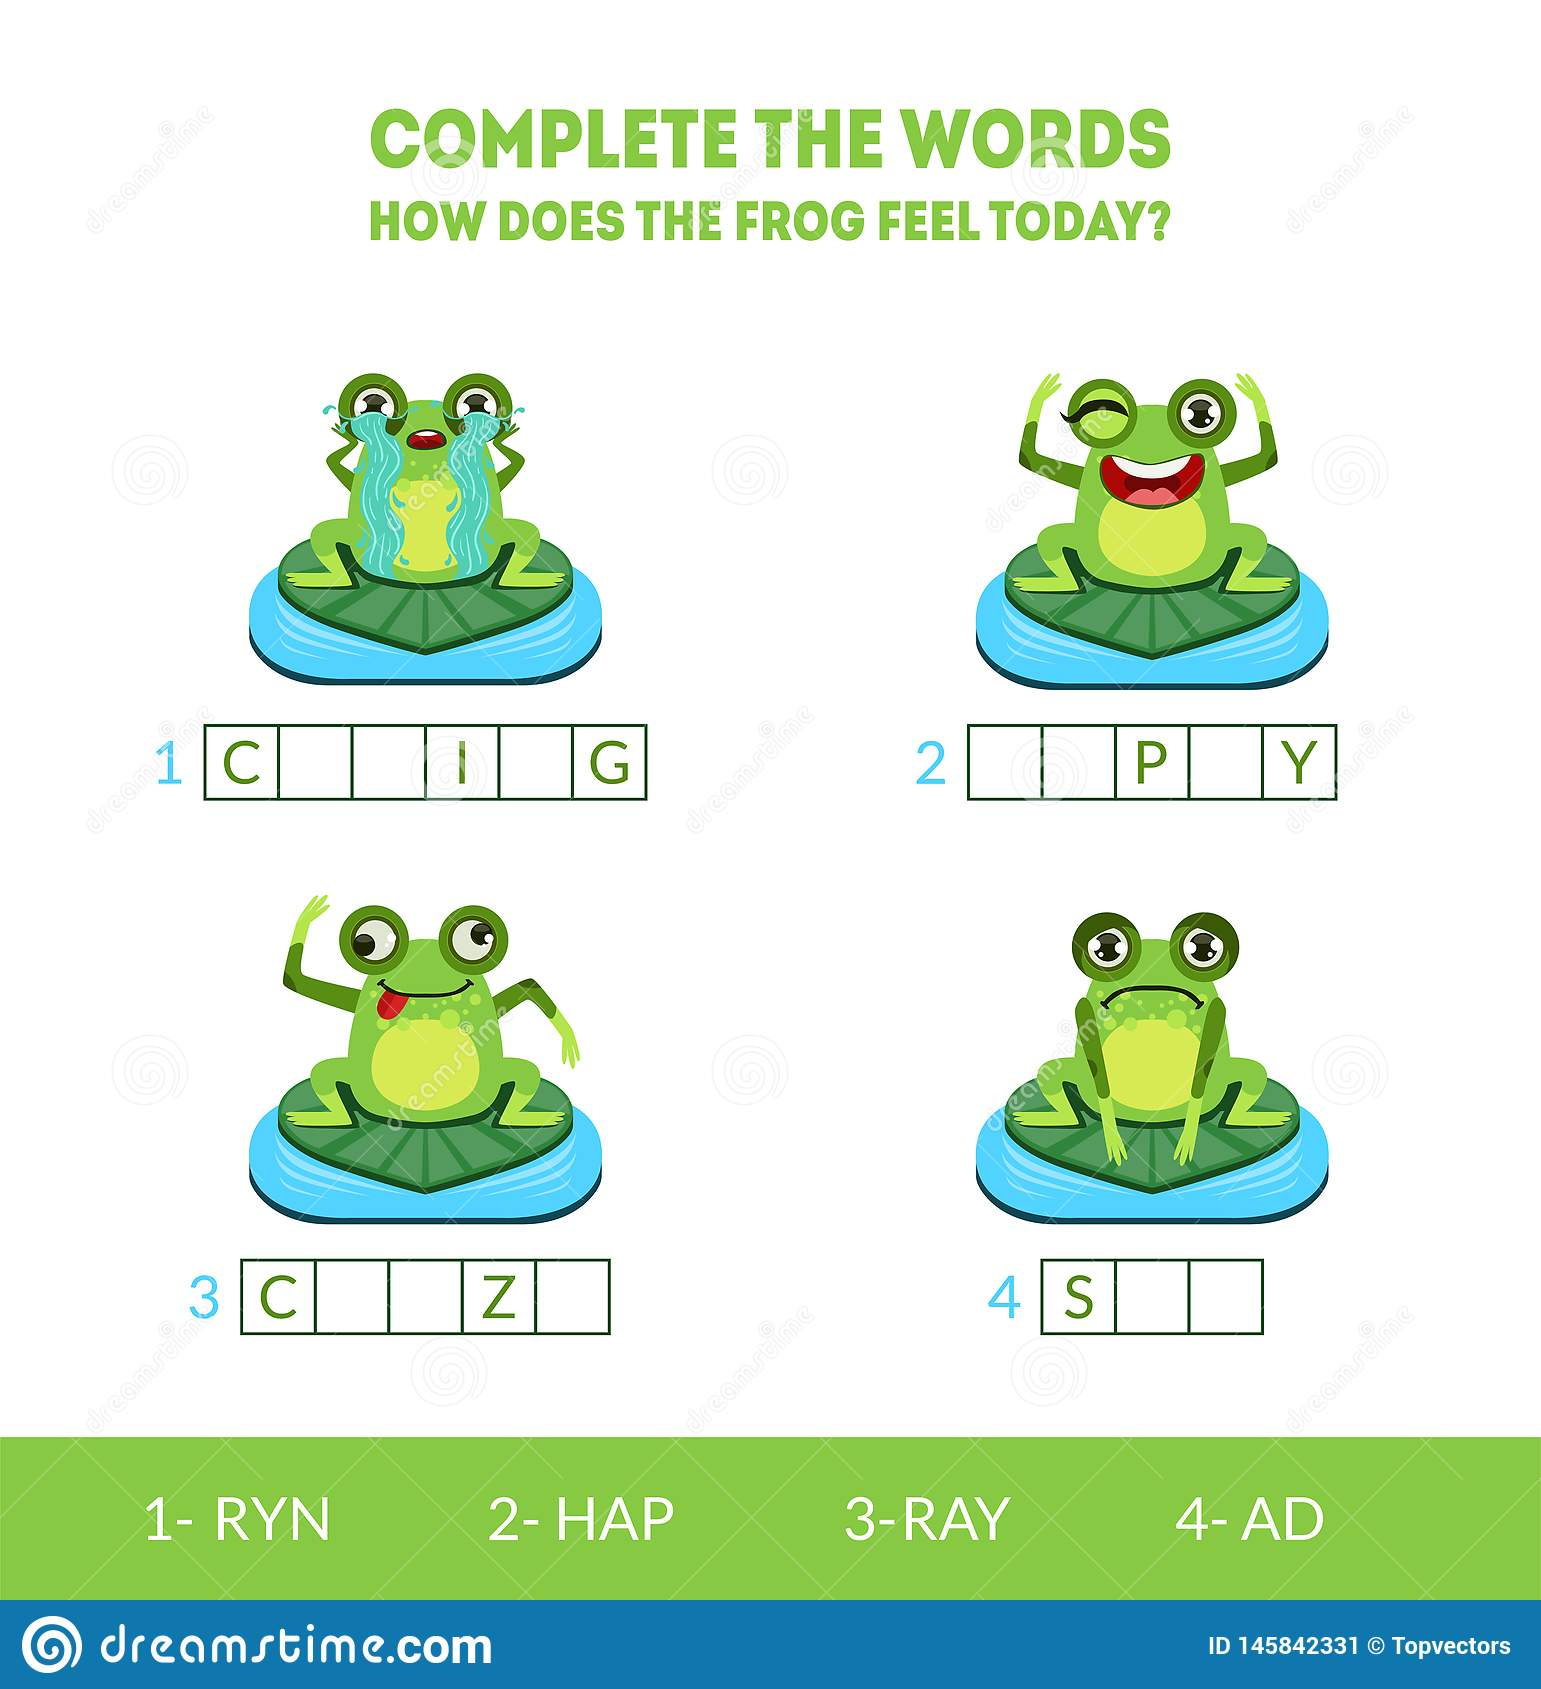 Complete the Words, How Does the Frog Feel Today, Crying, Happy, Crazy, Sad, Matching Game with Cute Amphibian Animal